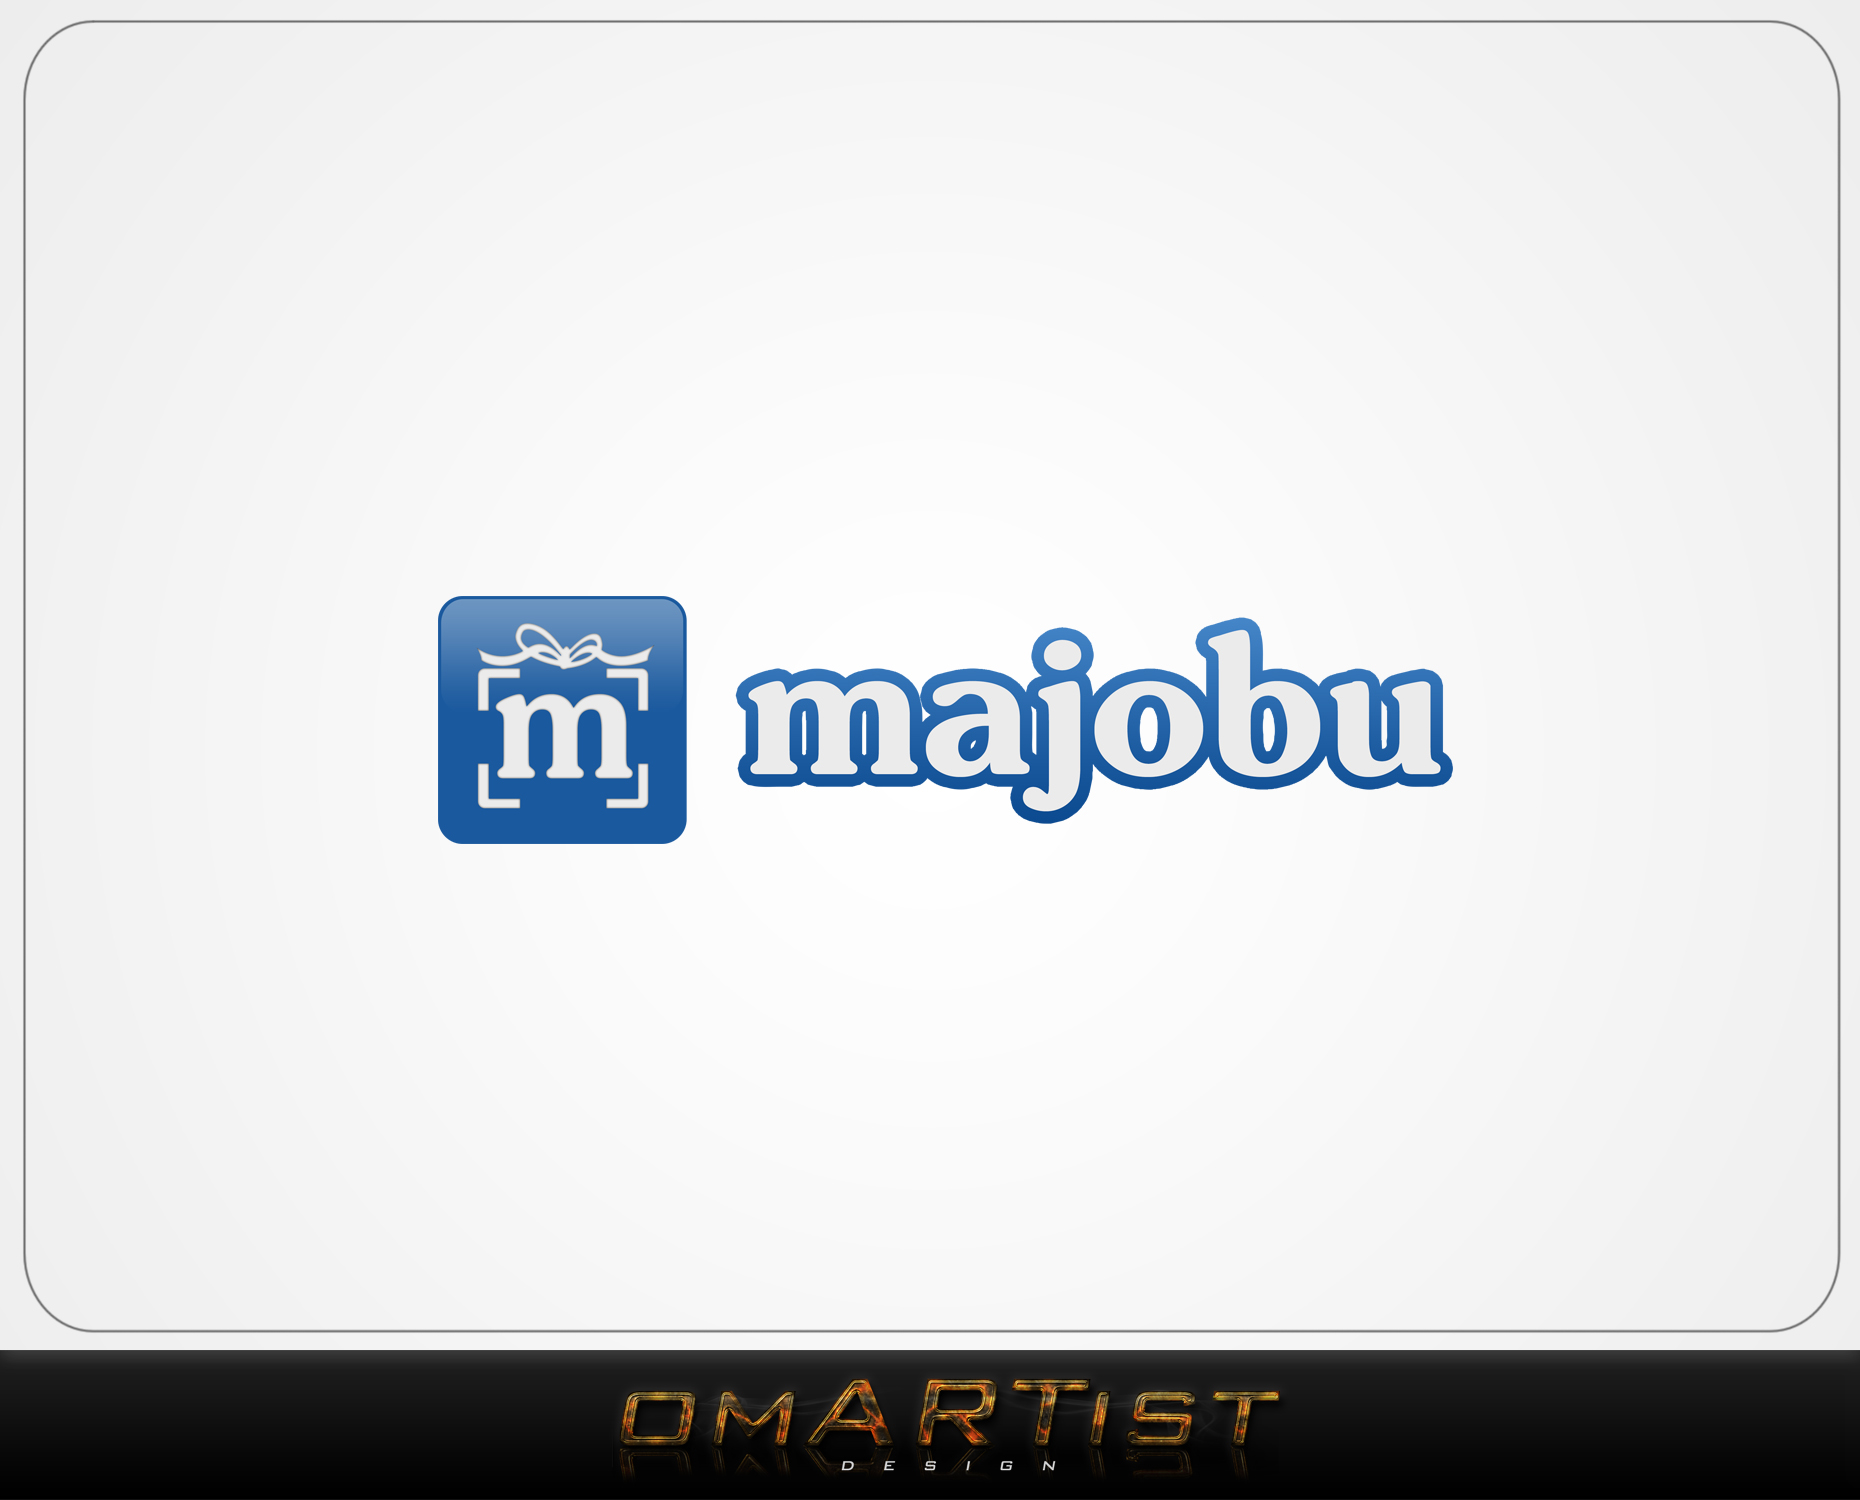 Logo Design by omARTist - Entry No. 169 in the Logo Design Contest Inspiring Logo Design for Majobu.